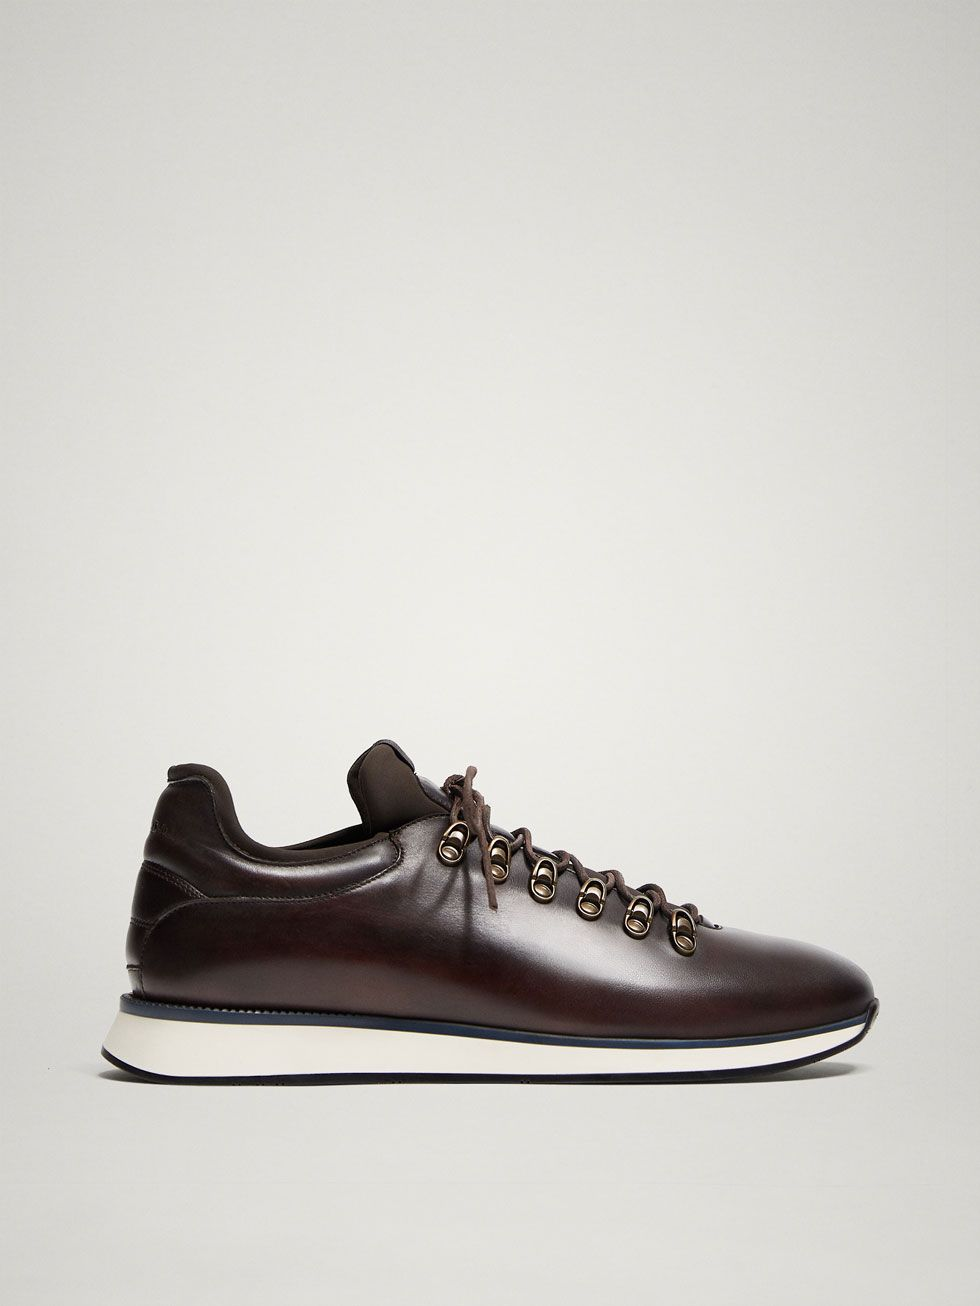 68ca2ffa Limited edition brown leather sneakers in 2019 | Sneakers Custom ...